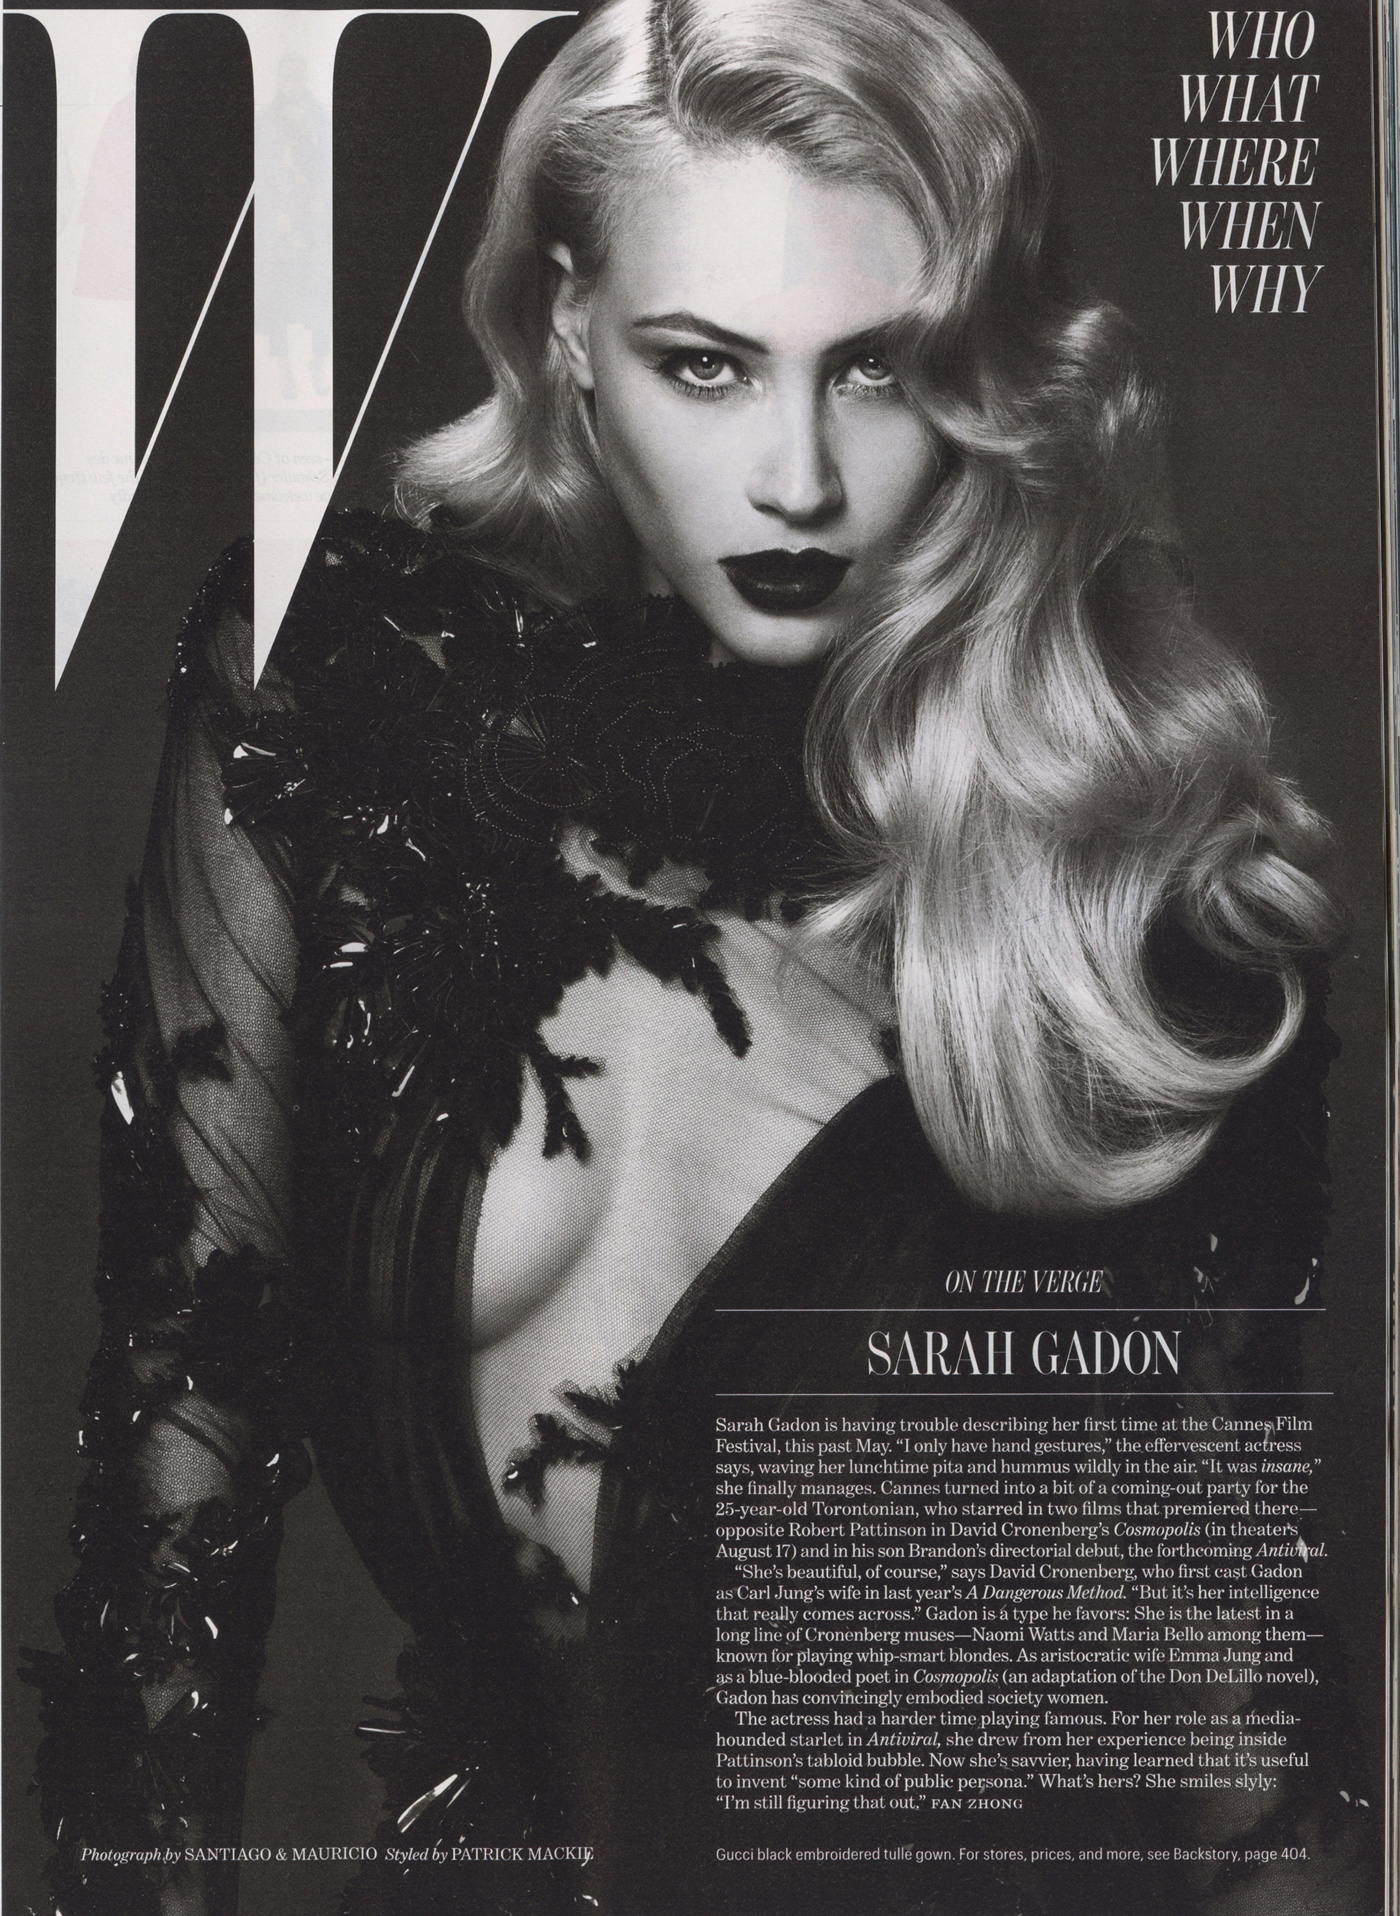 W Magazine, Sept. 2012 - Who section opener